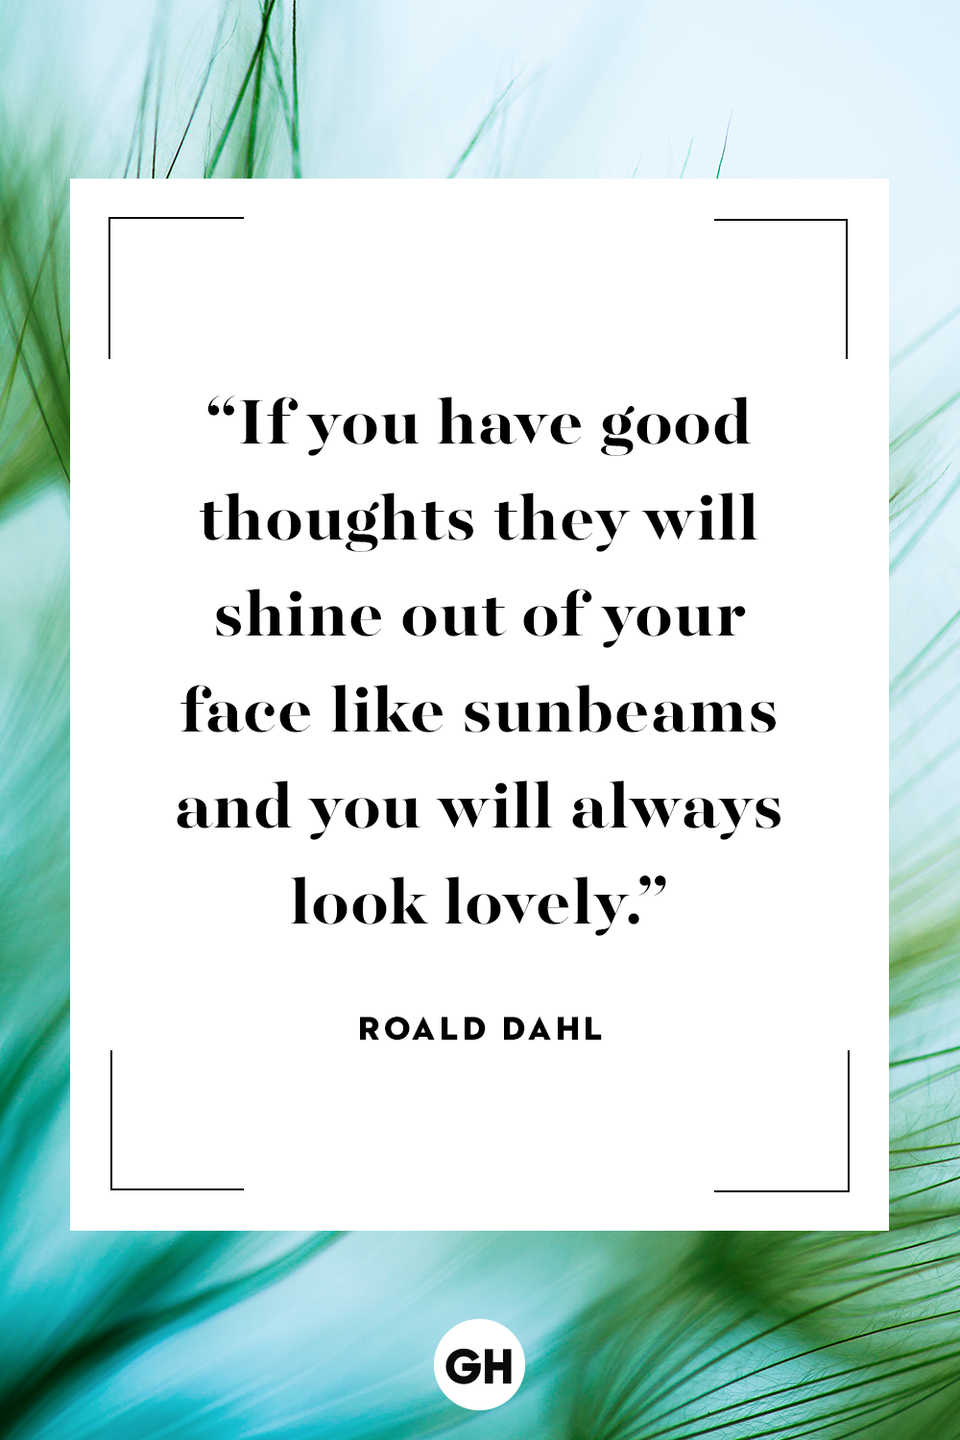 <p>If you have good thoughts they will shine out of your face like sunbeams and you will always look lovely. </p>